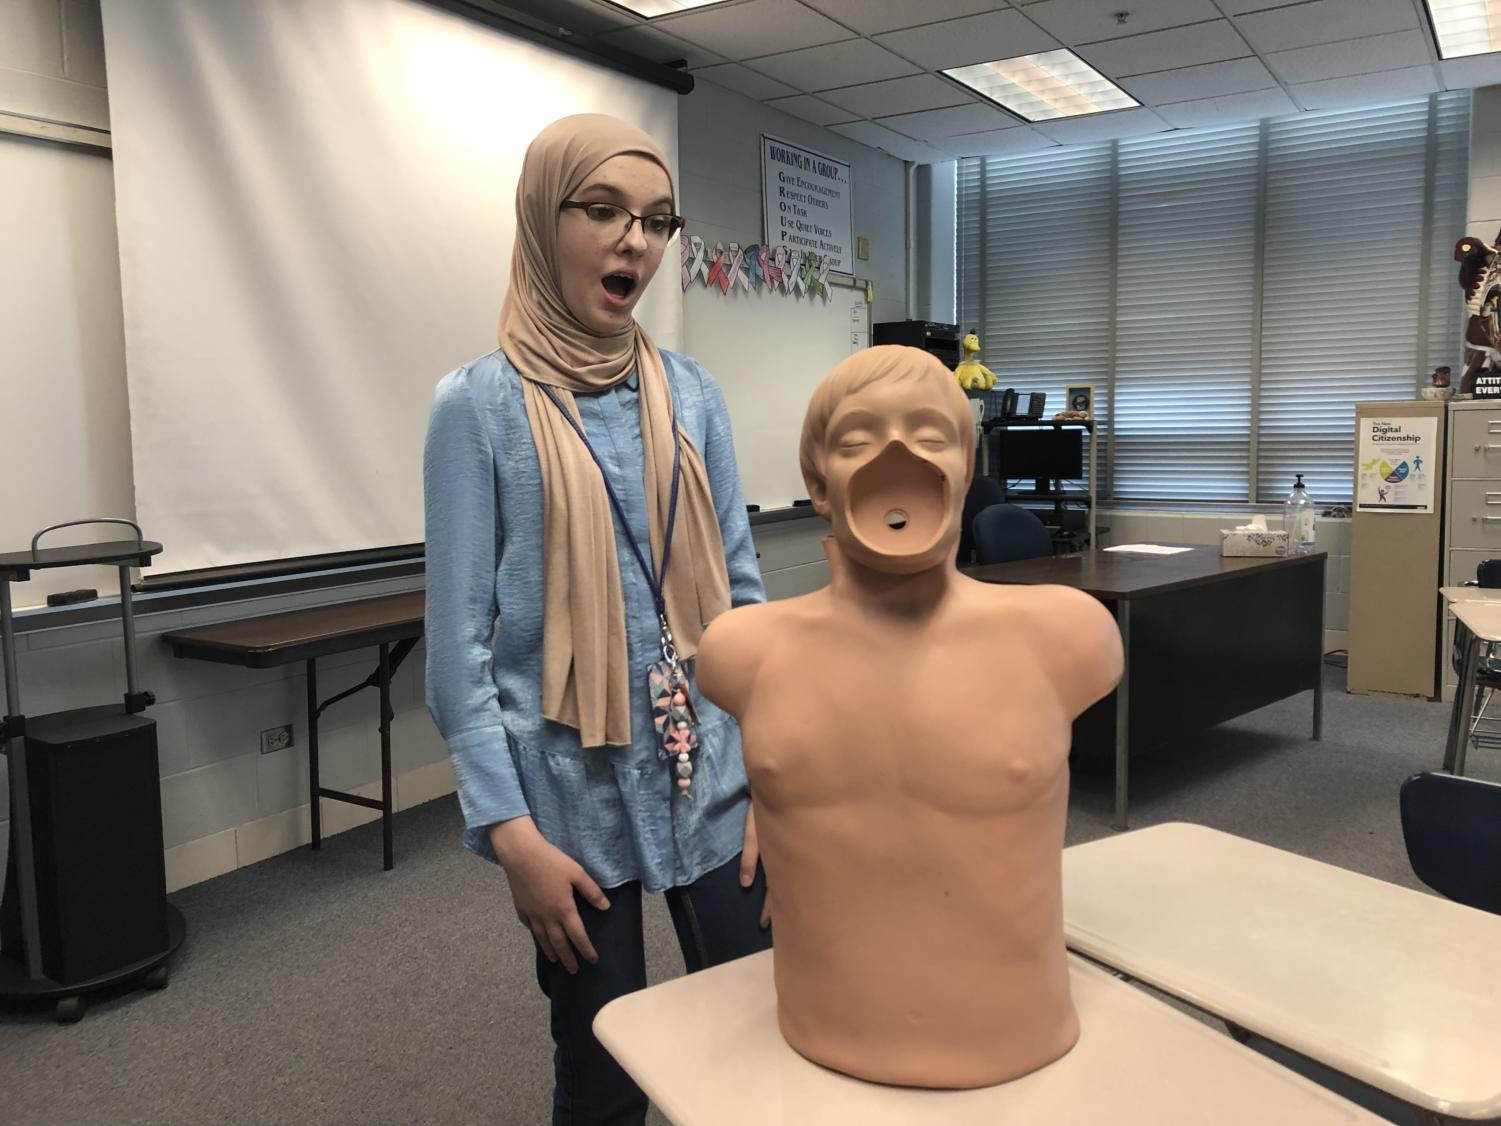 Ensara shows her discomfort with the CPR dummies popular in DGS health classes.